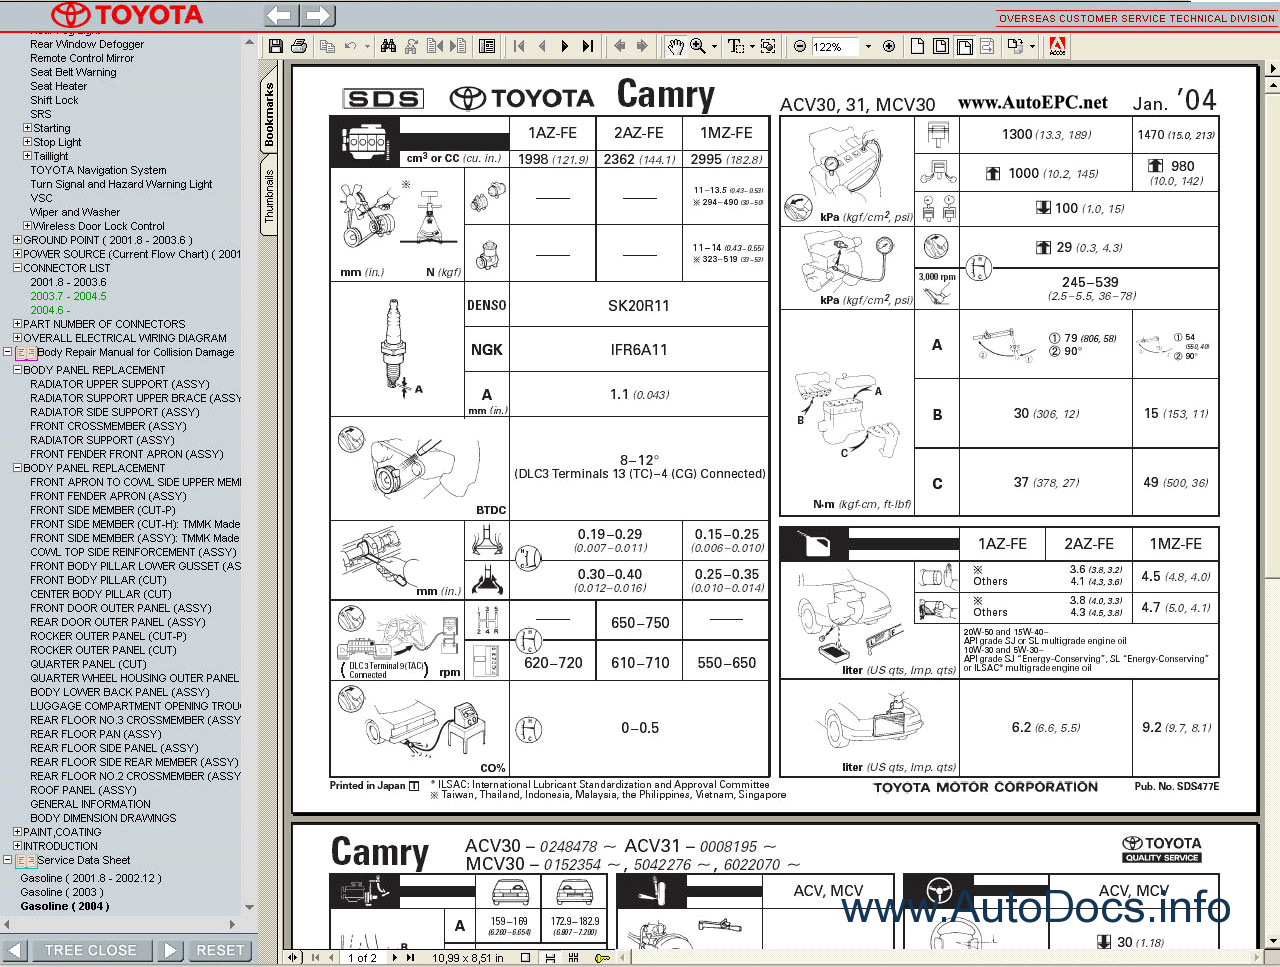 Free Download Toyota Camry manual